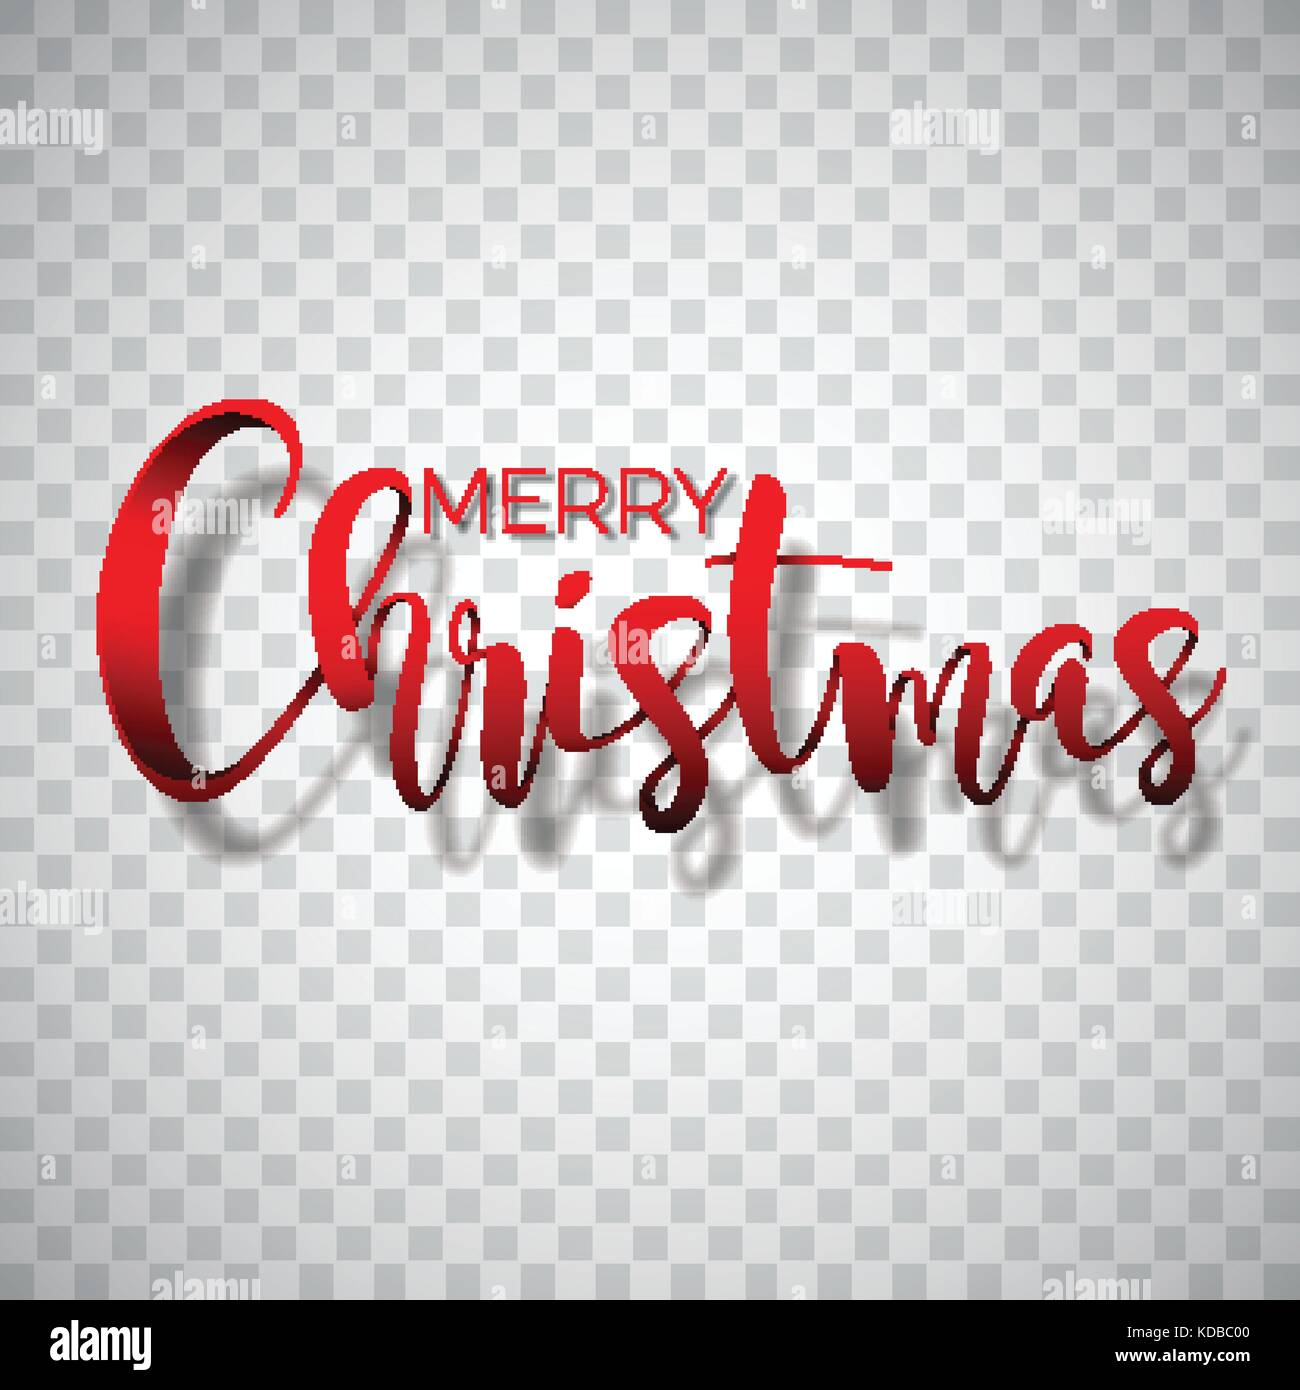 Merry Christmas No Background.Merry Christmas Typography Illustration On A Transparent